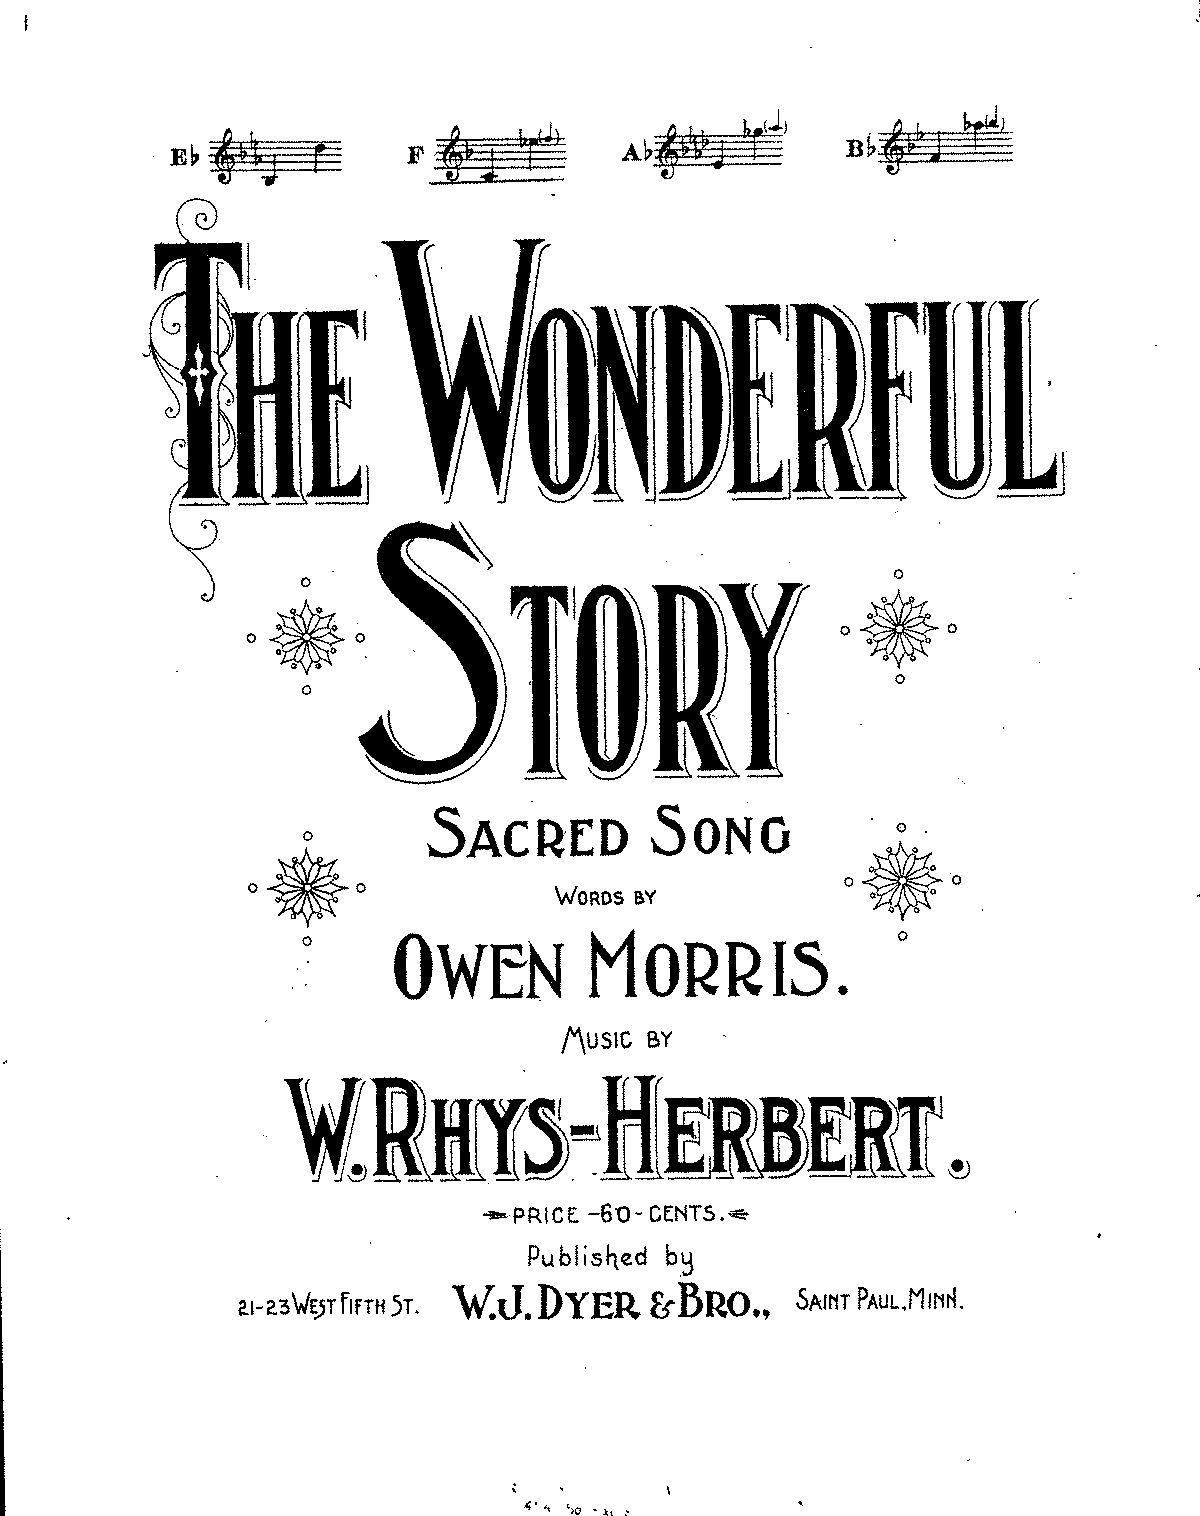 PMLP414495-Rhys-Herbert wonderful story.pdf